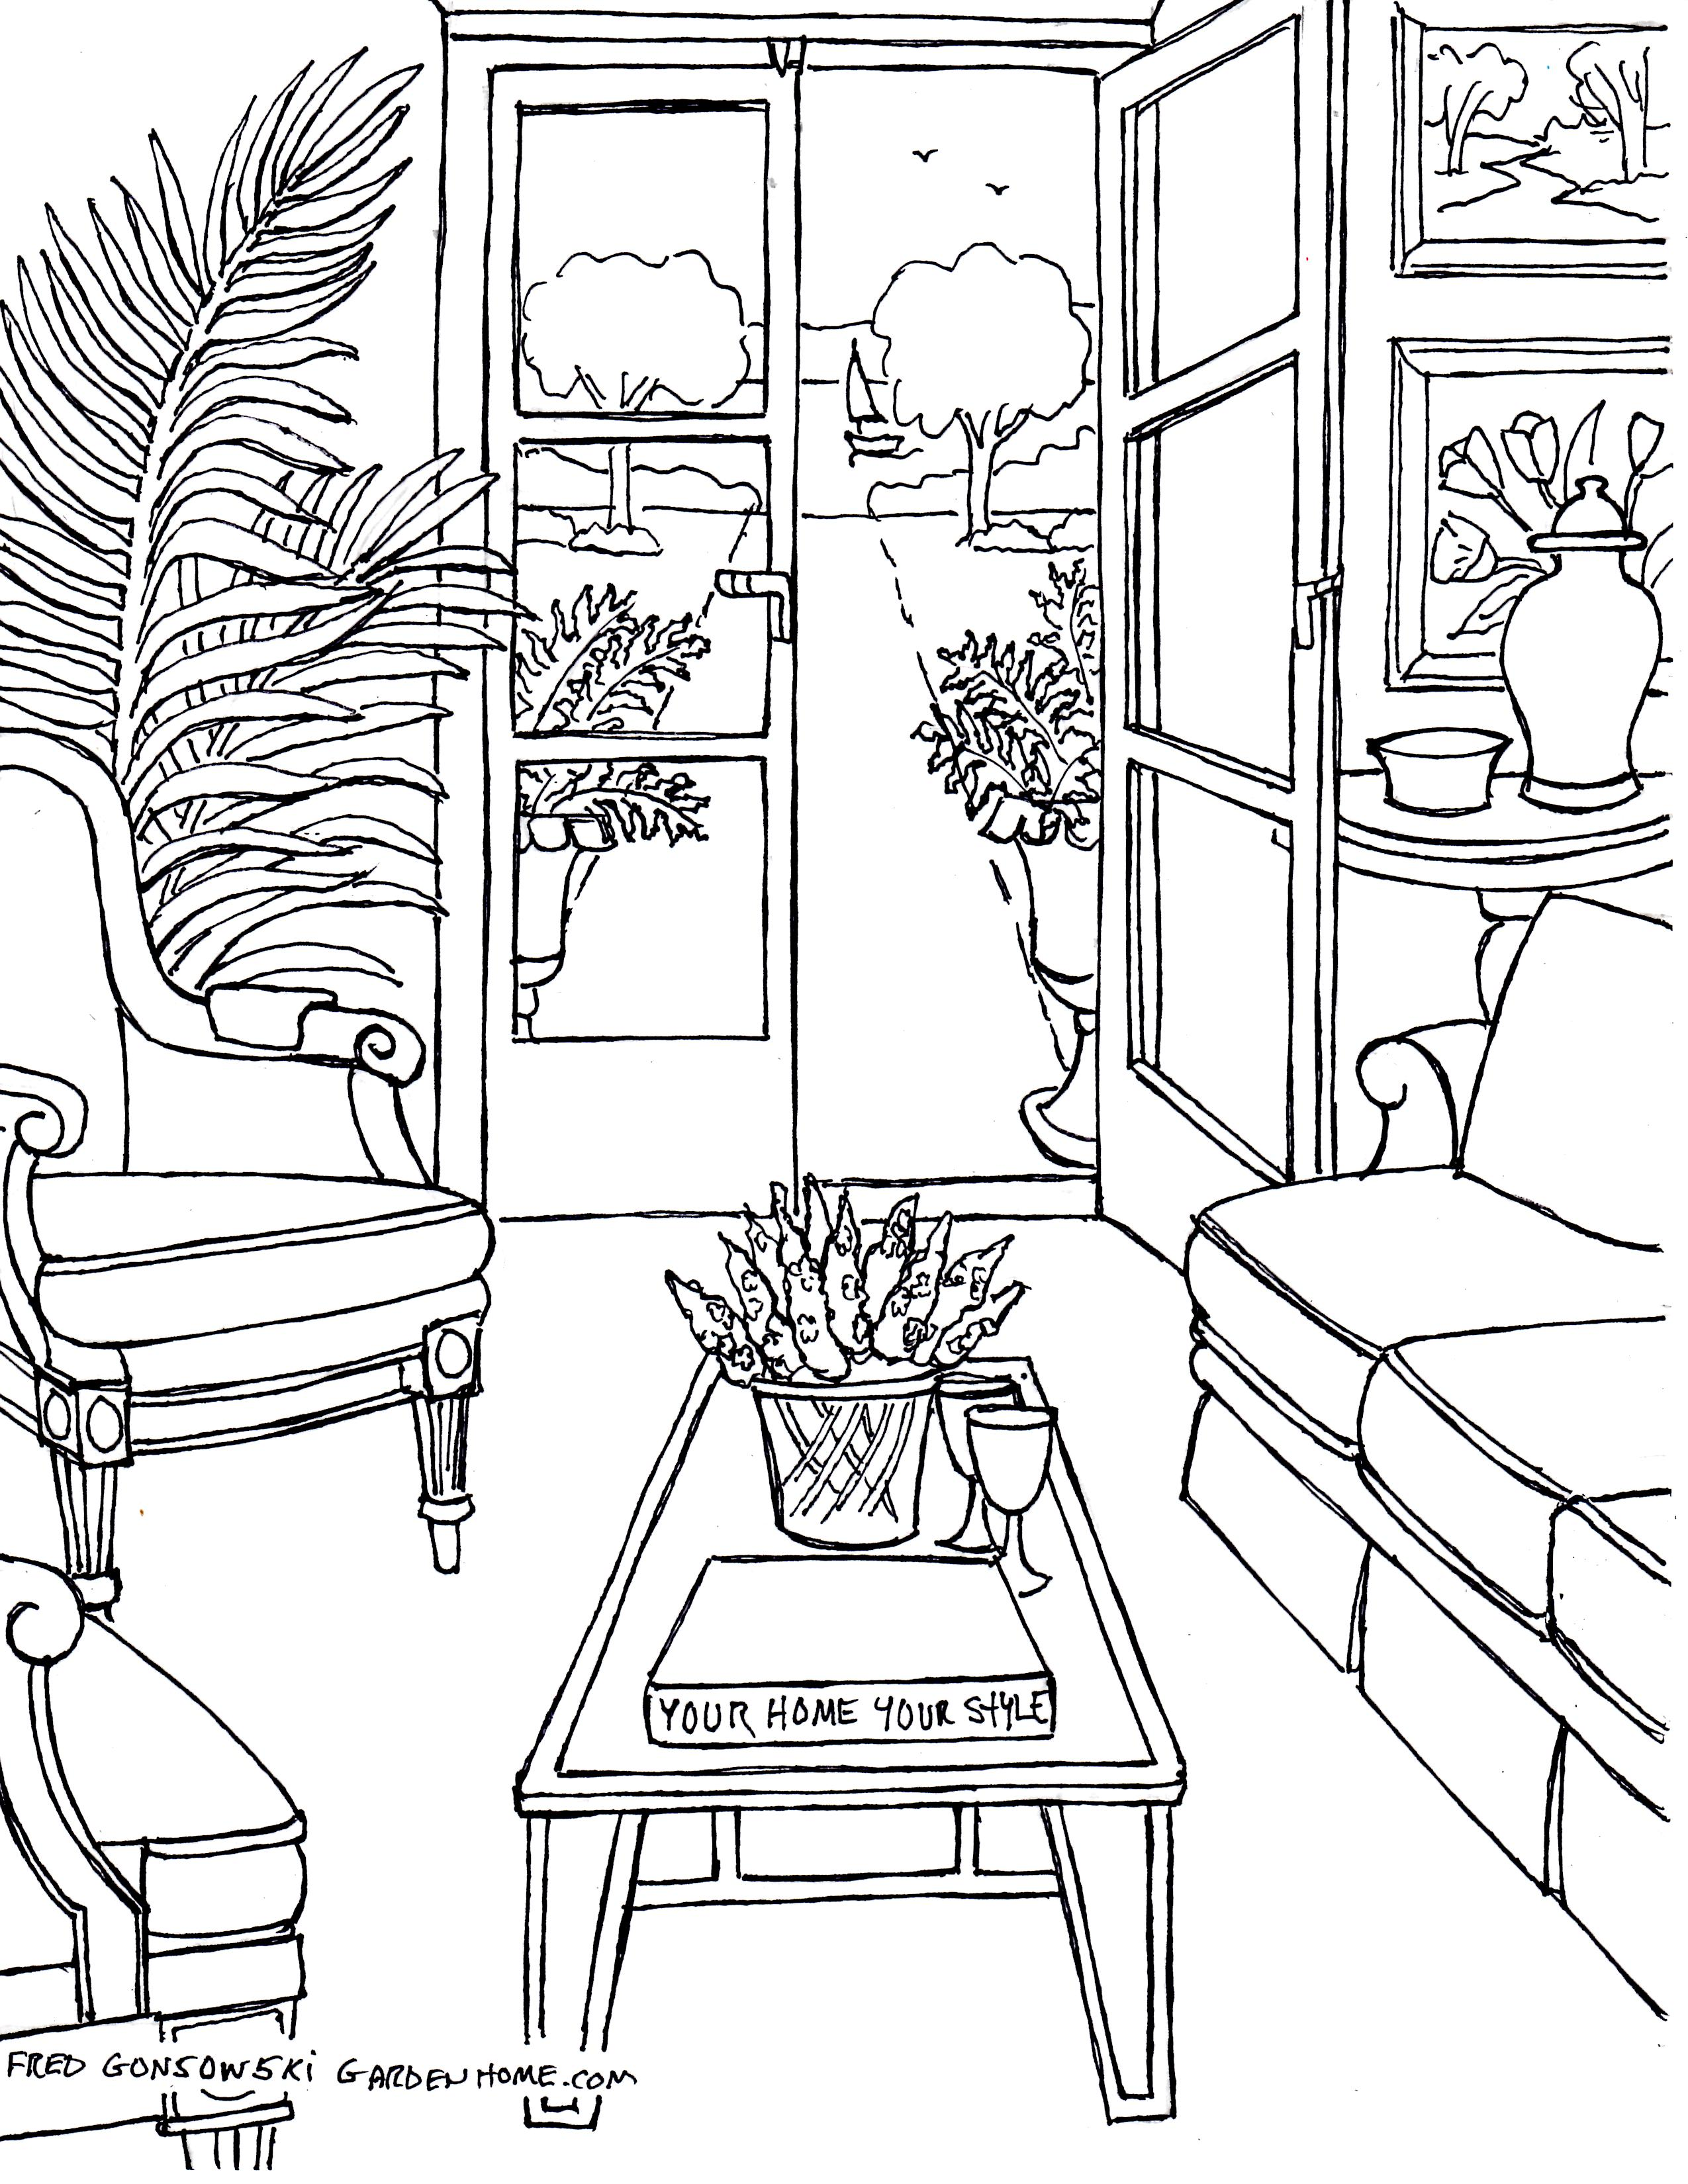 Drawn chair coloring page Some  Drawings pages img405